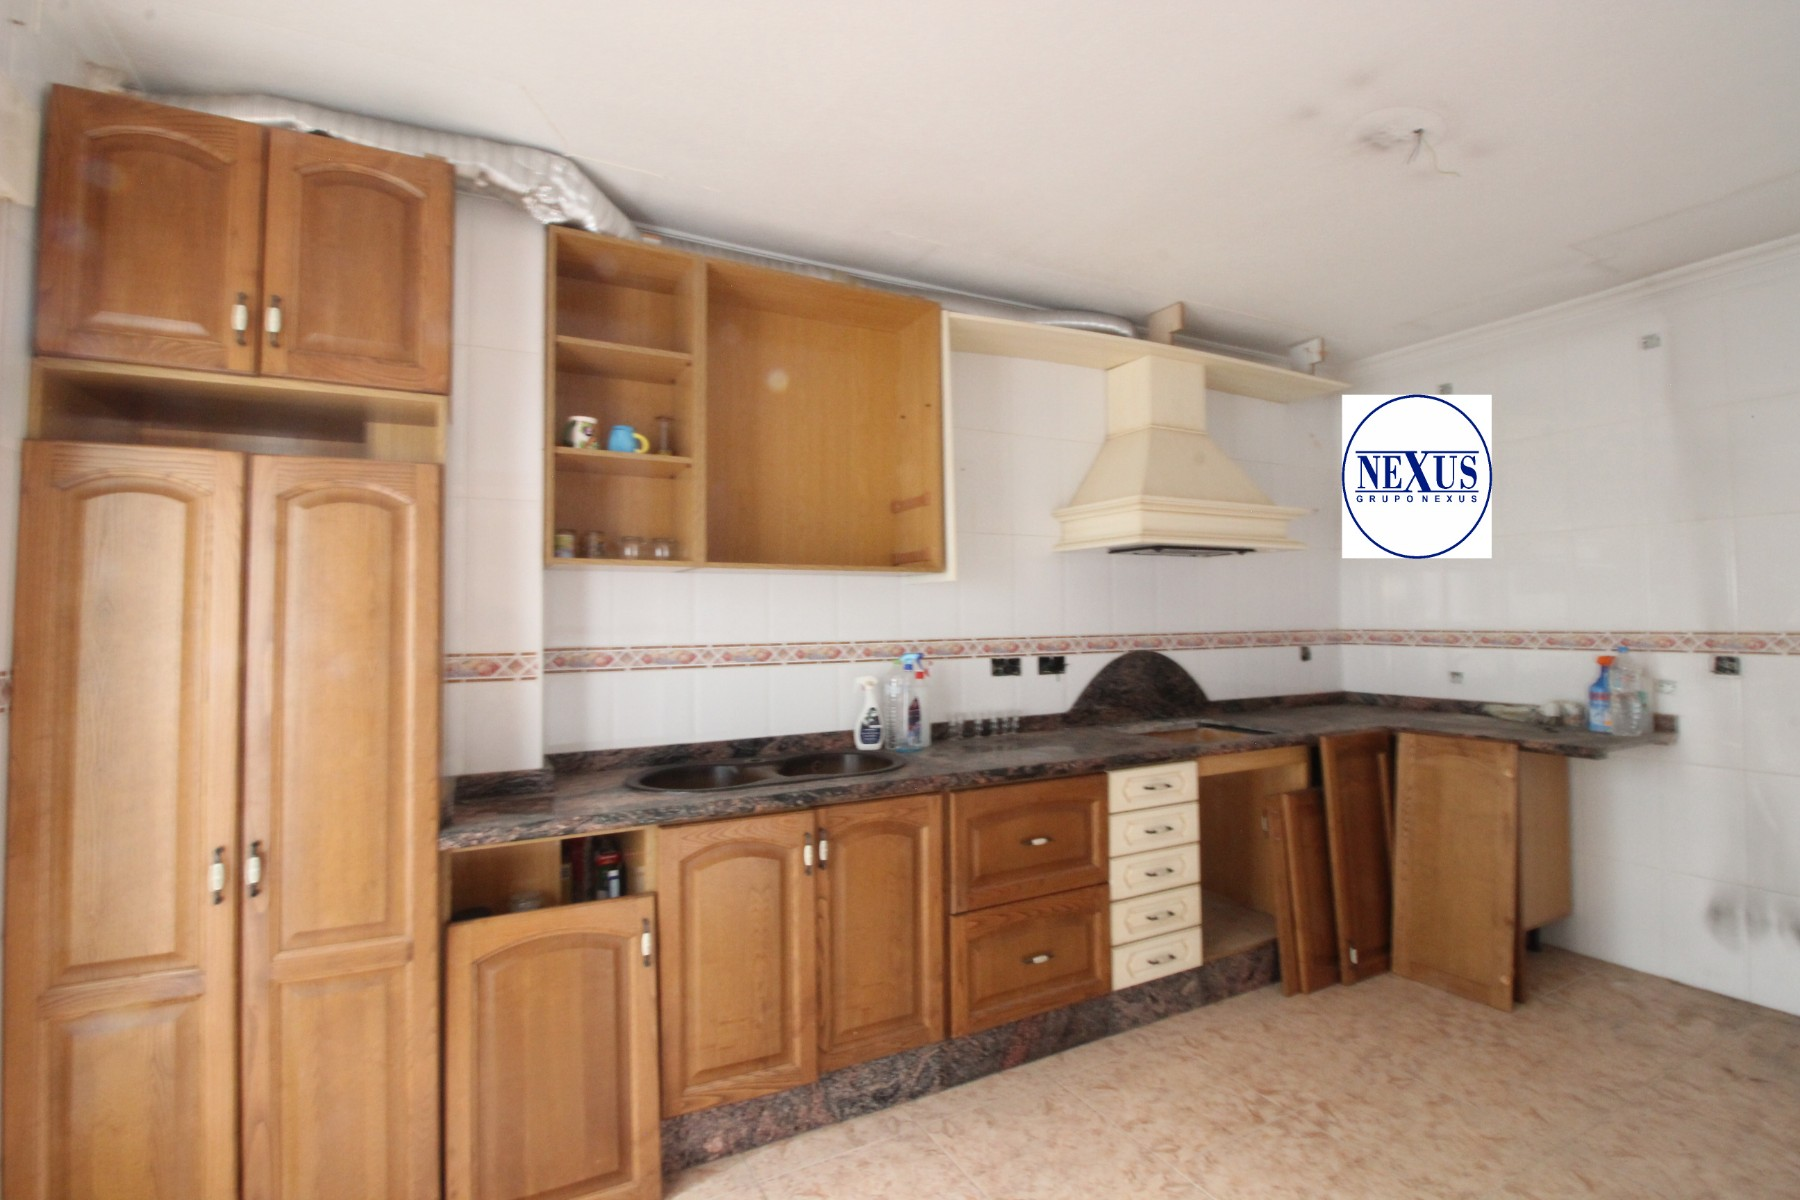 Inmobiliaria Grupo Nexus Sells excellent townhouse in the center of Benijofar in Nexus Grupo